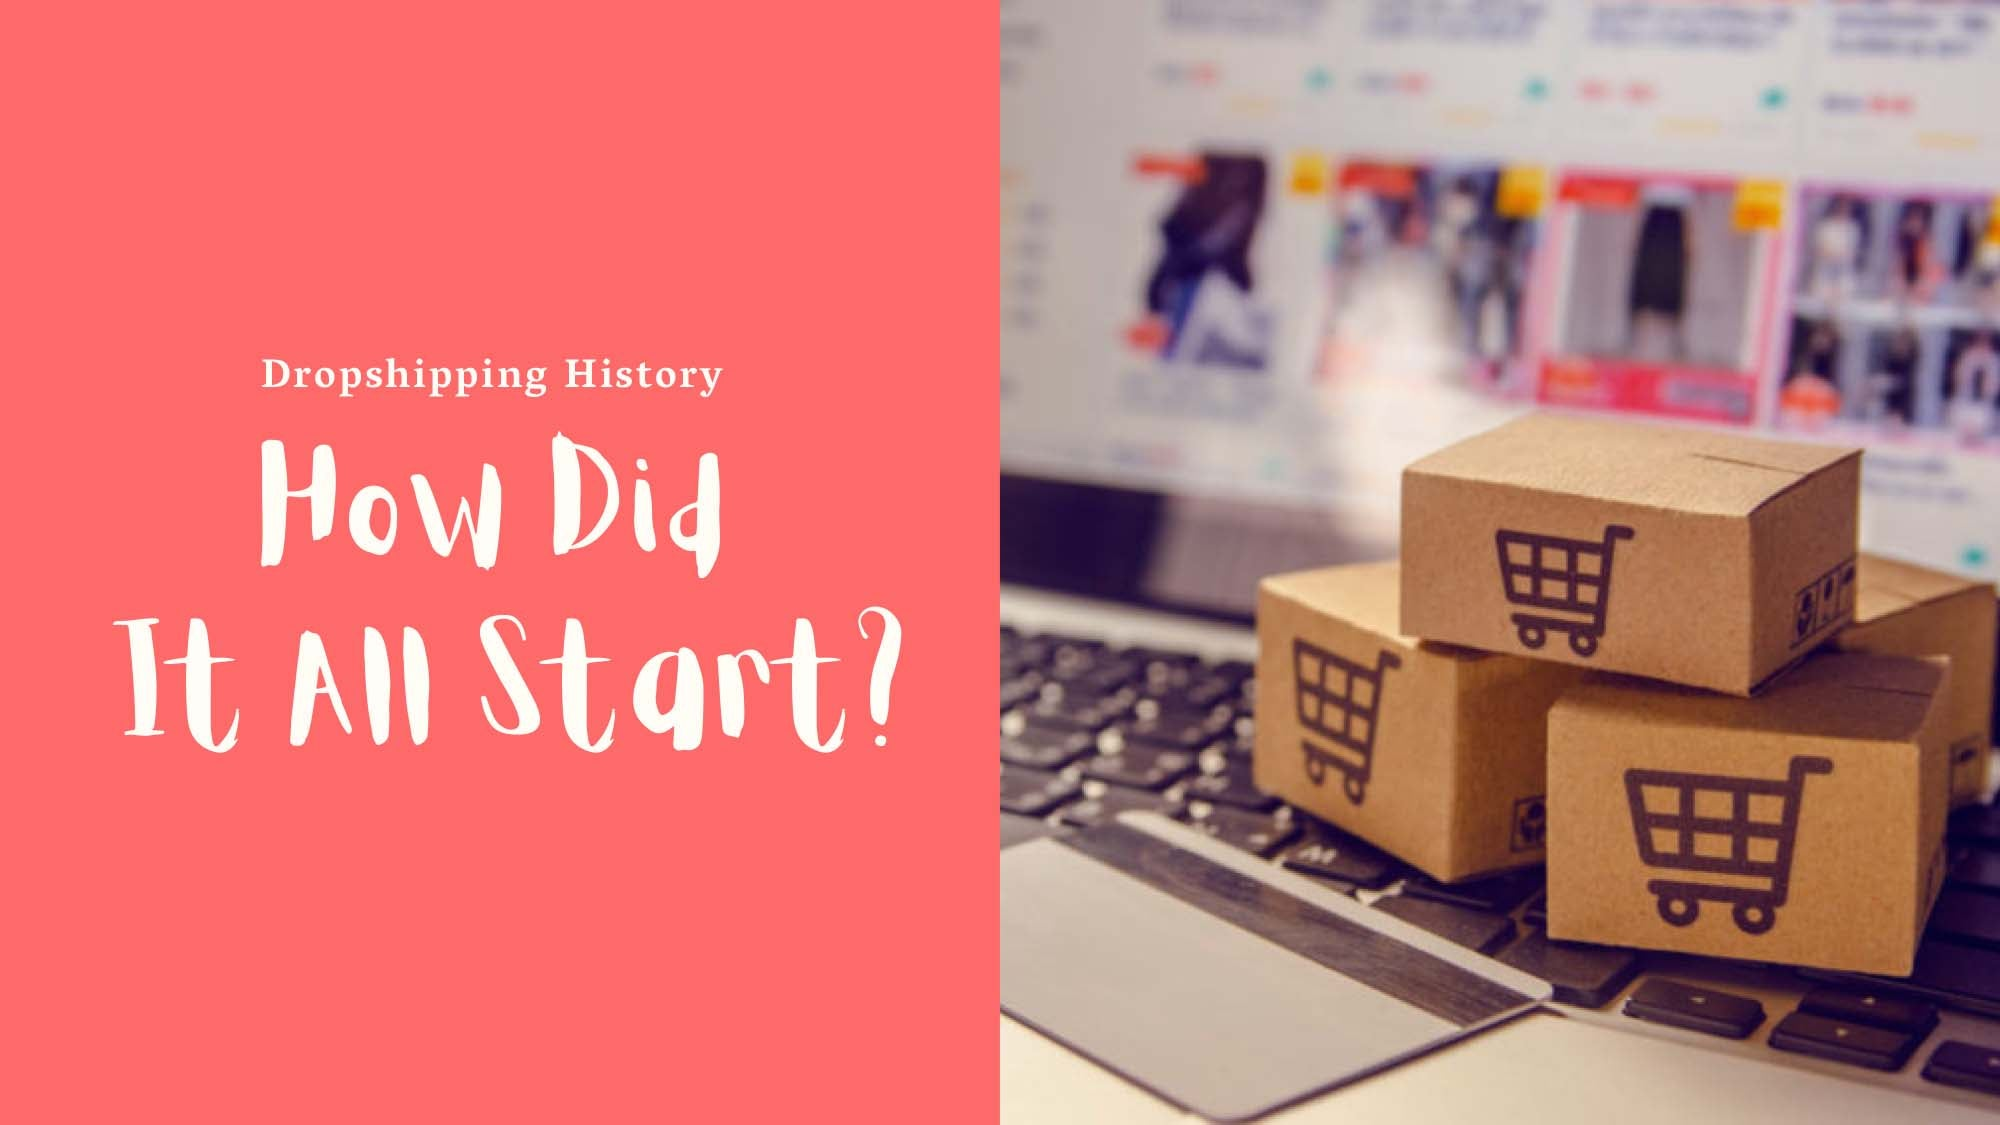 Dropshipping History: How Did It All Start?